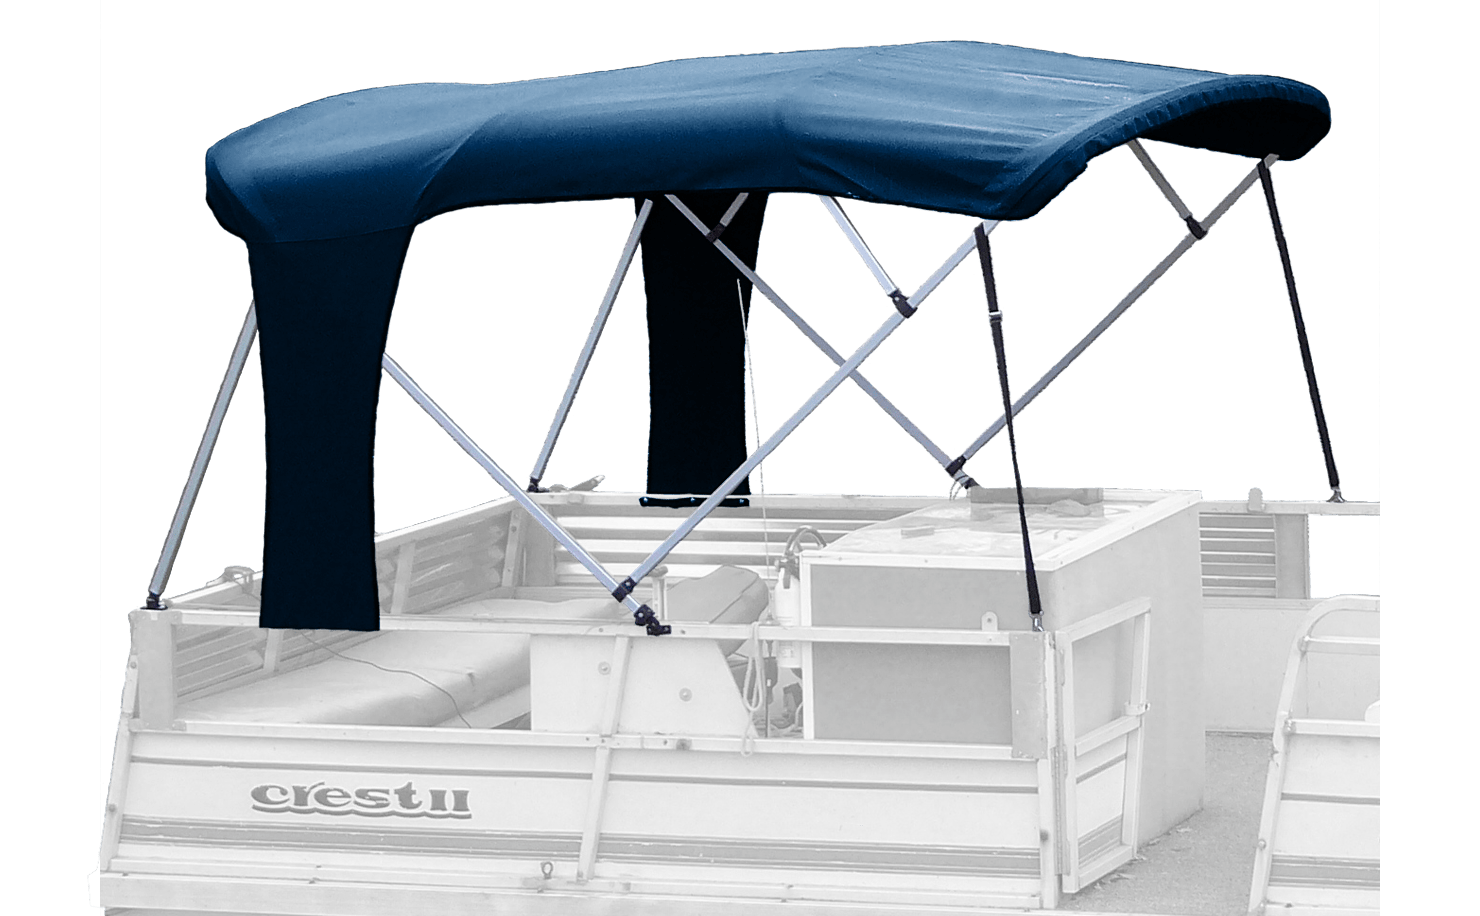 Bimini Tops for Pontoon Boats